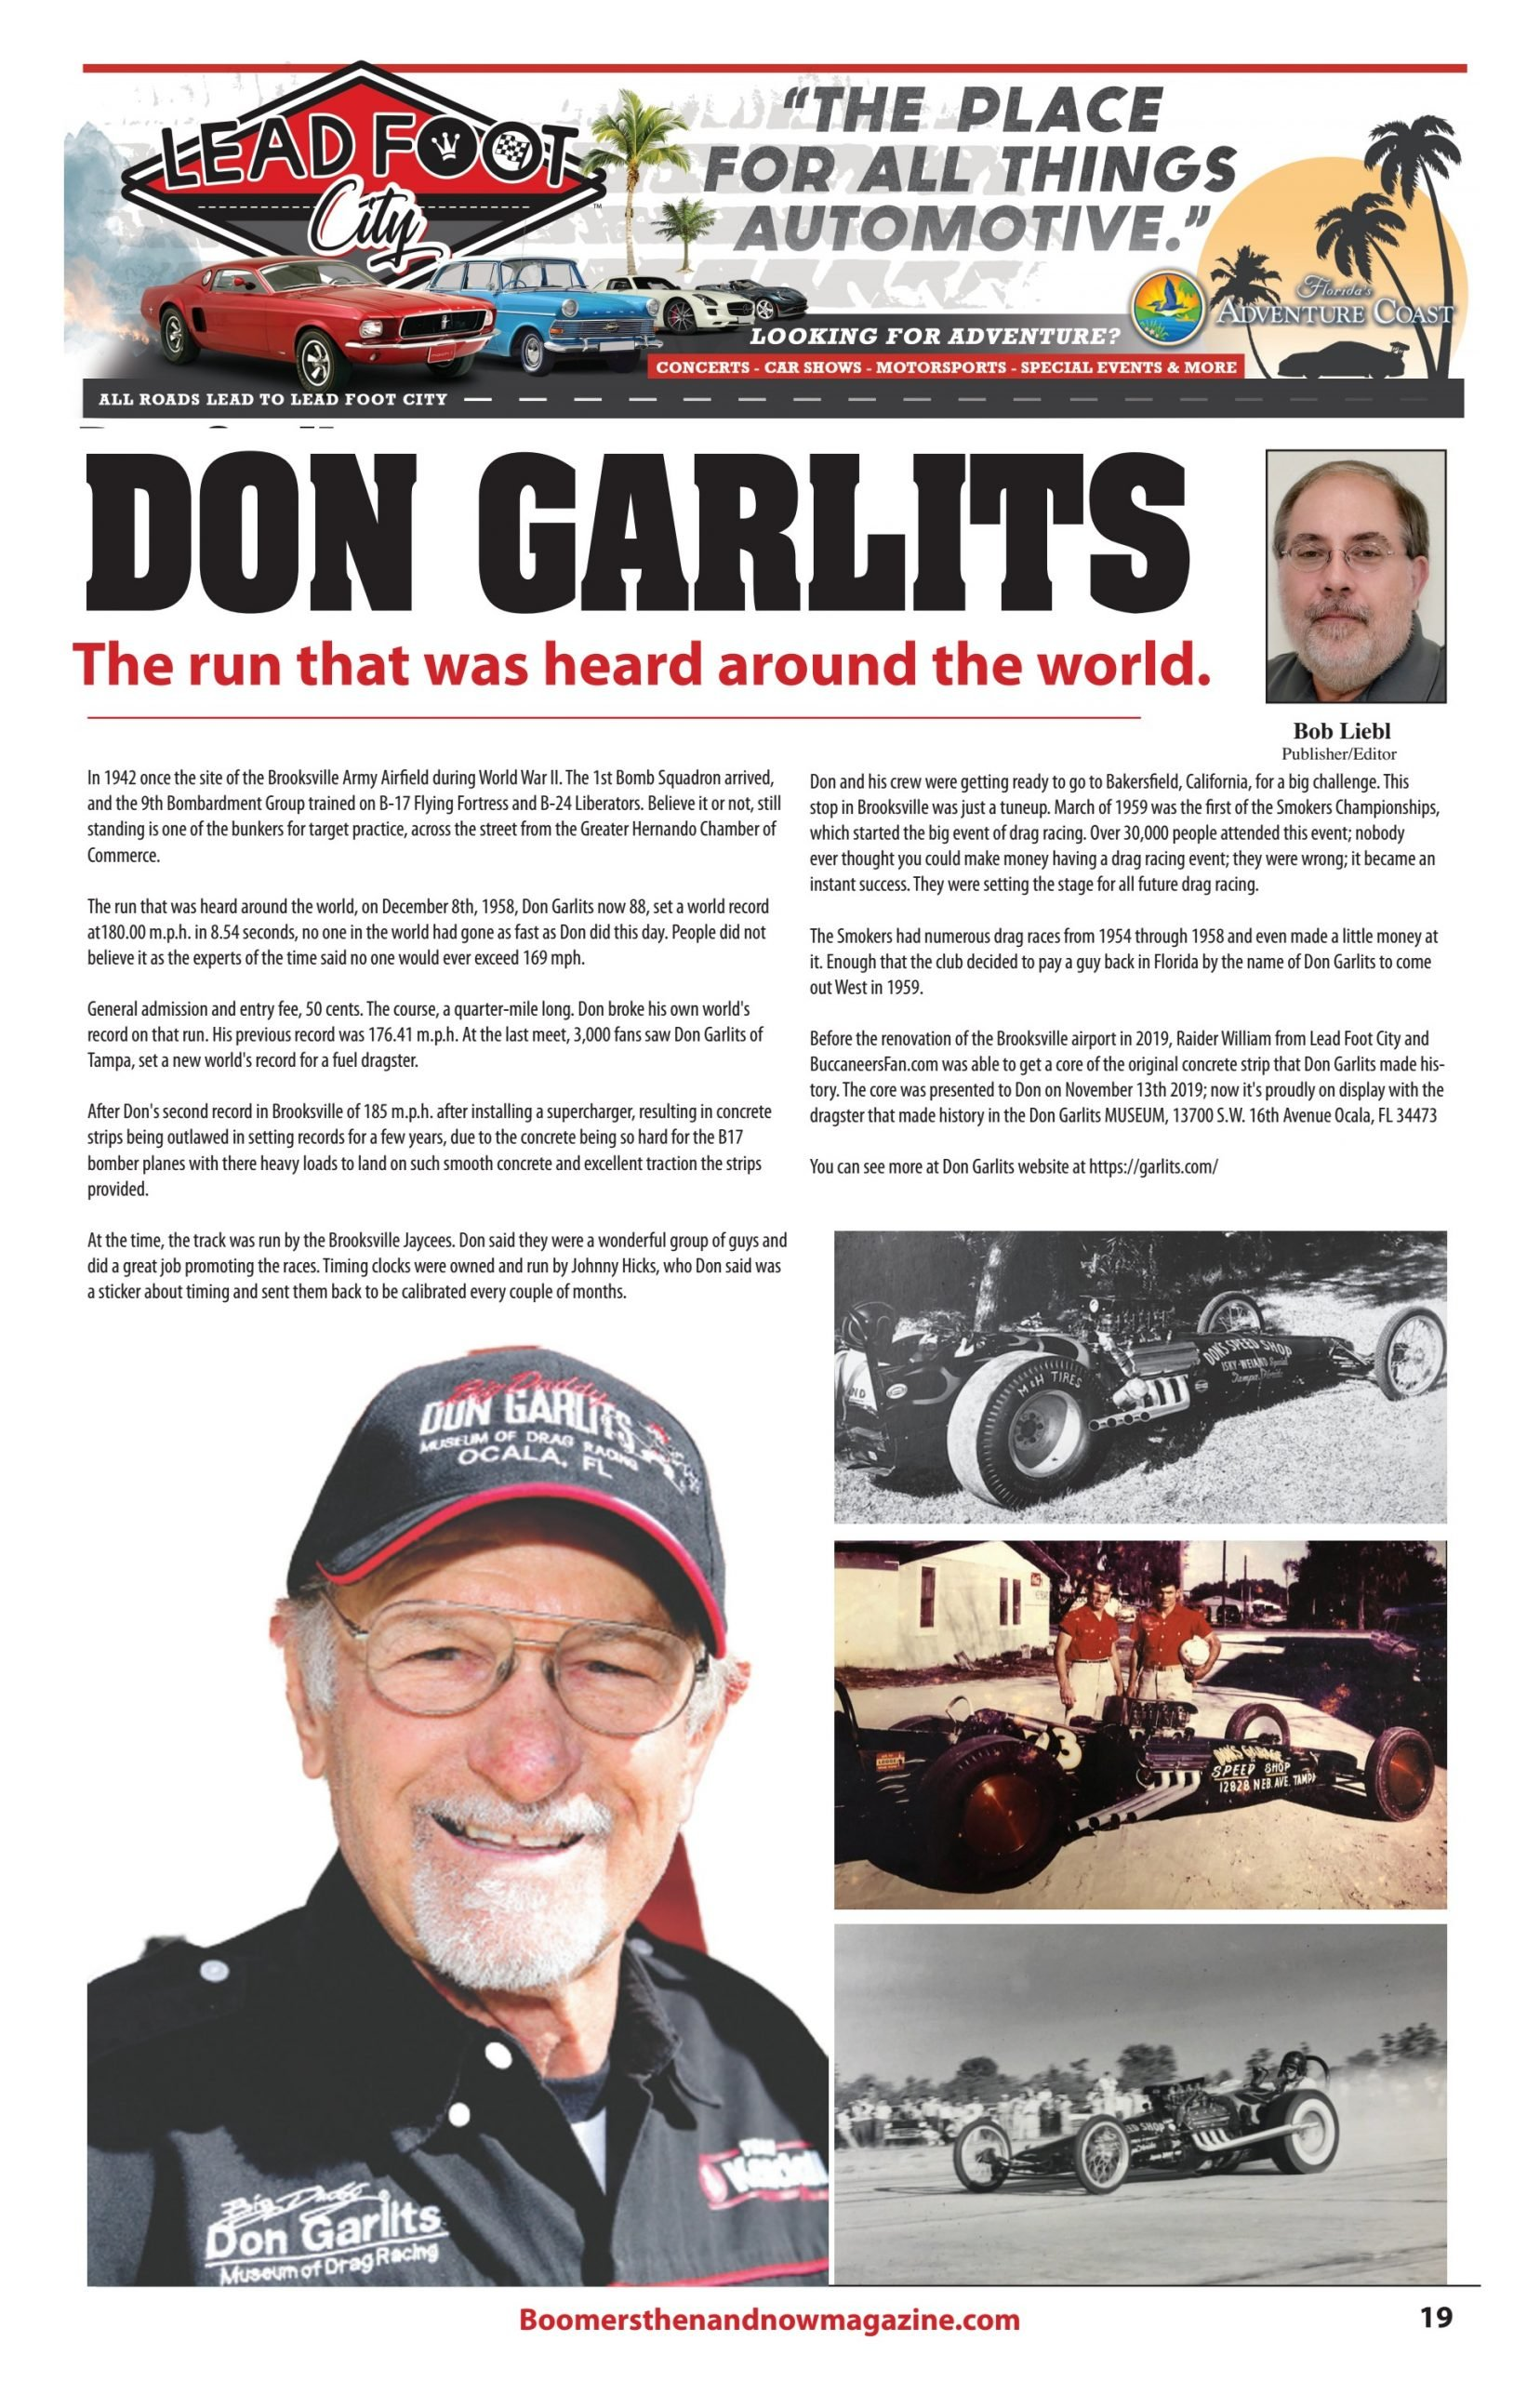 Don Garlits 1958 World Record